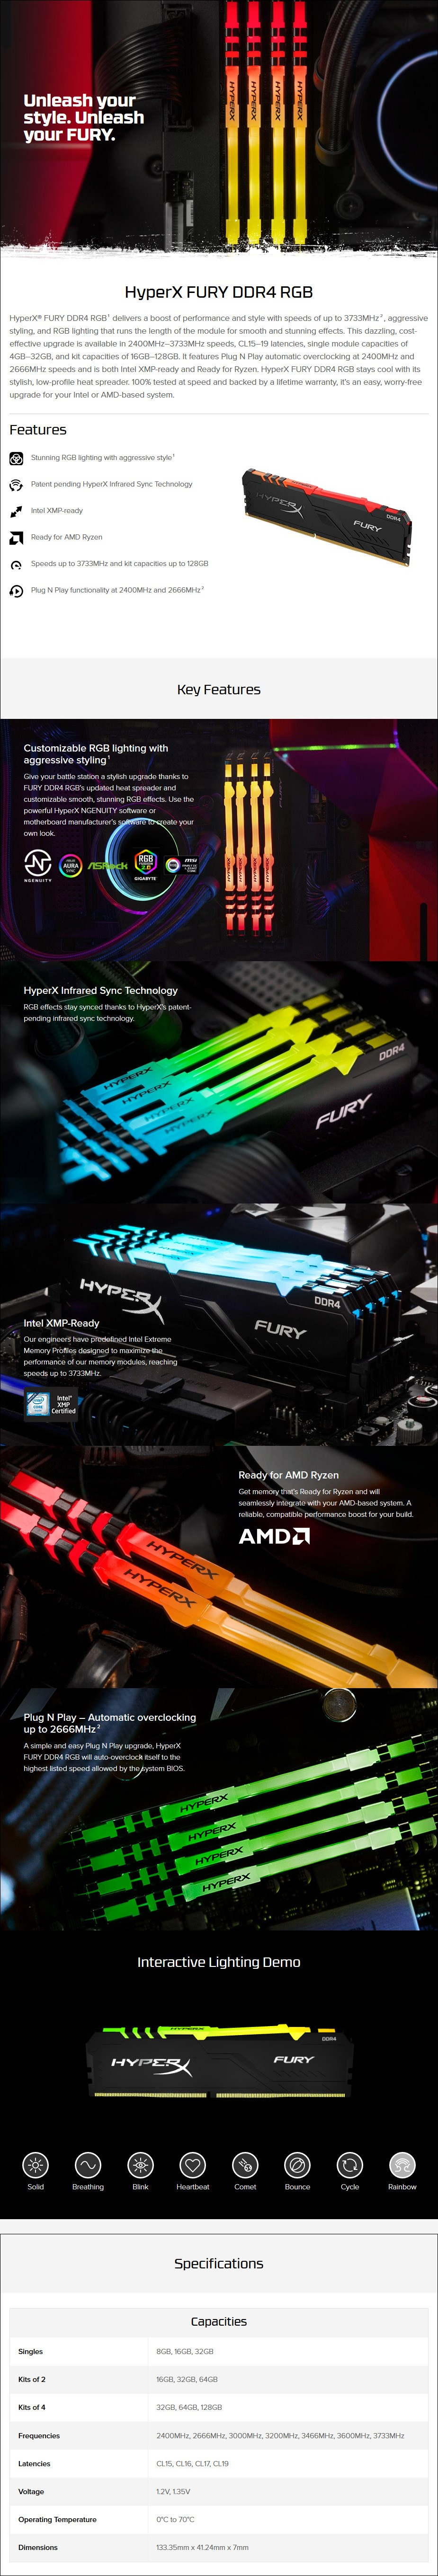 Kingston HyperX FURY RGB DDR4 3600MHz Memory - Overview 1